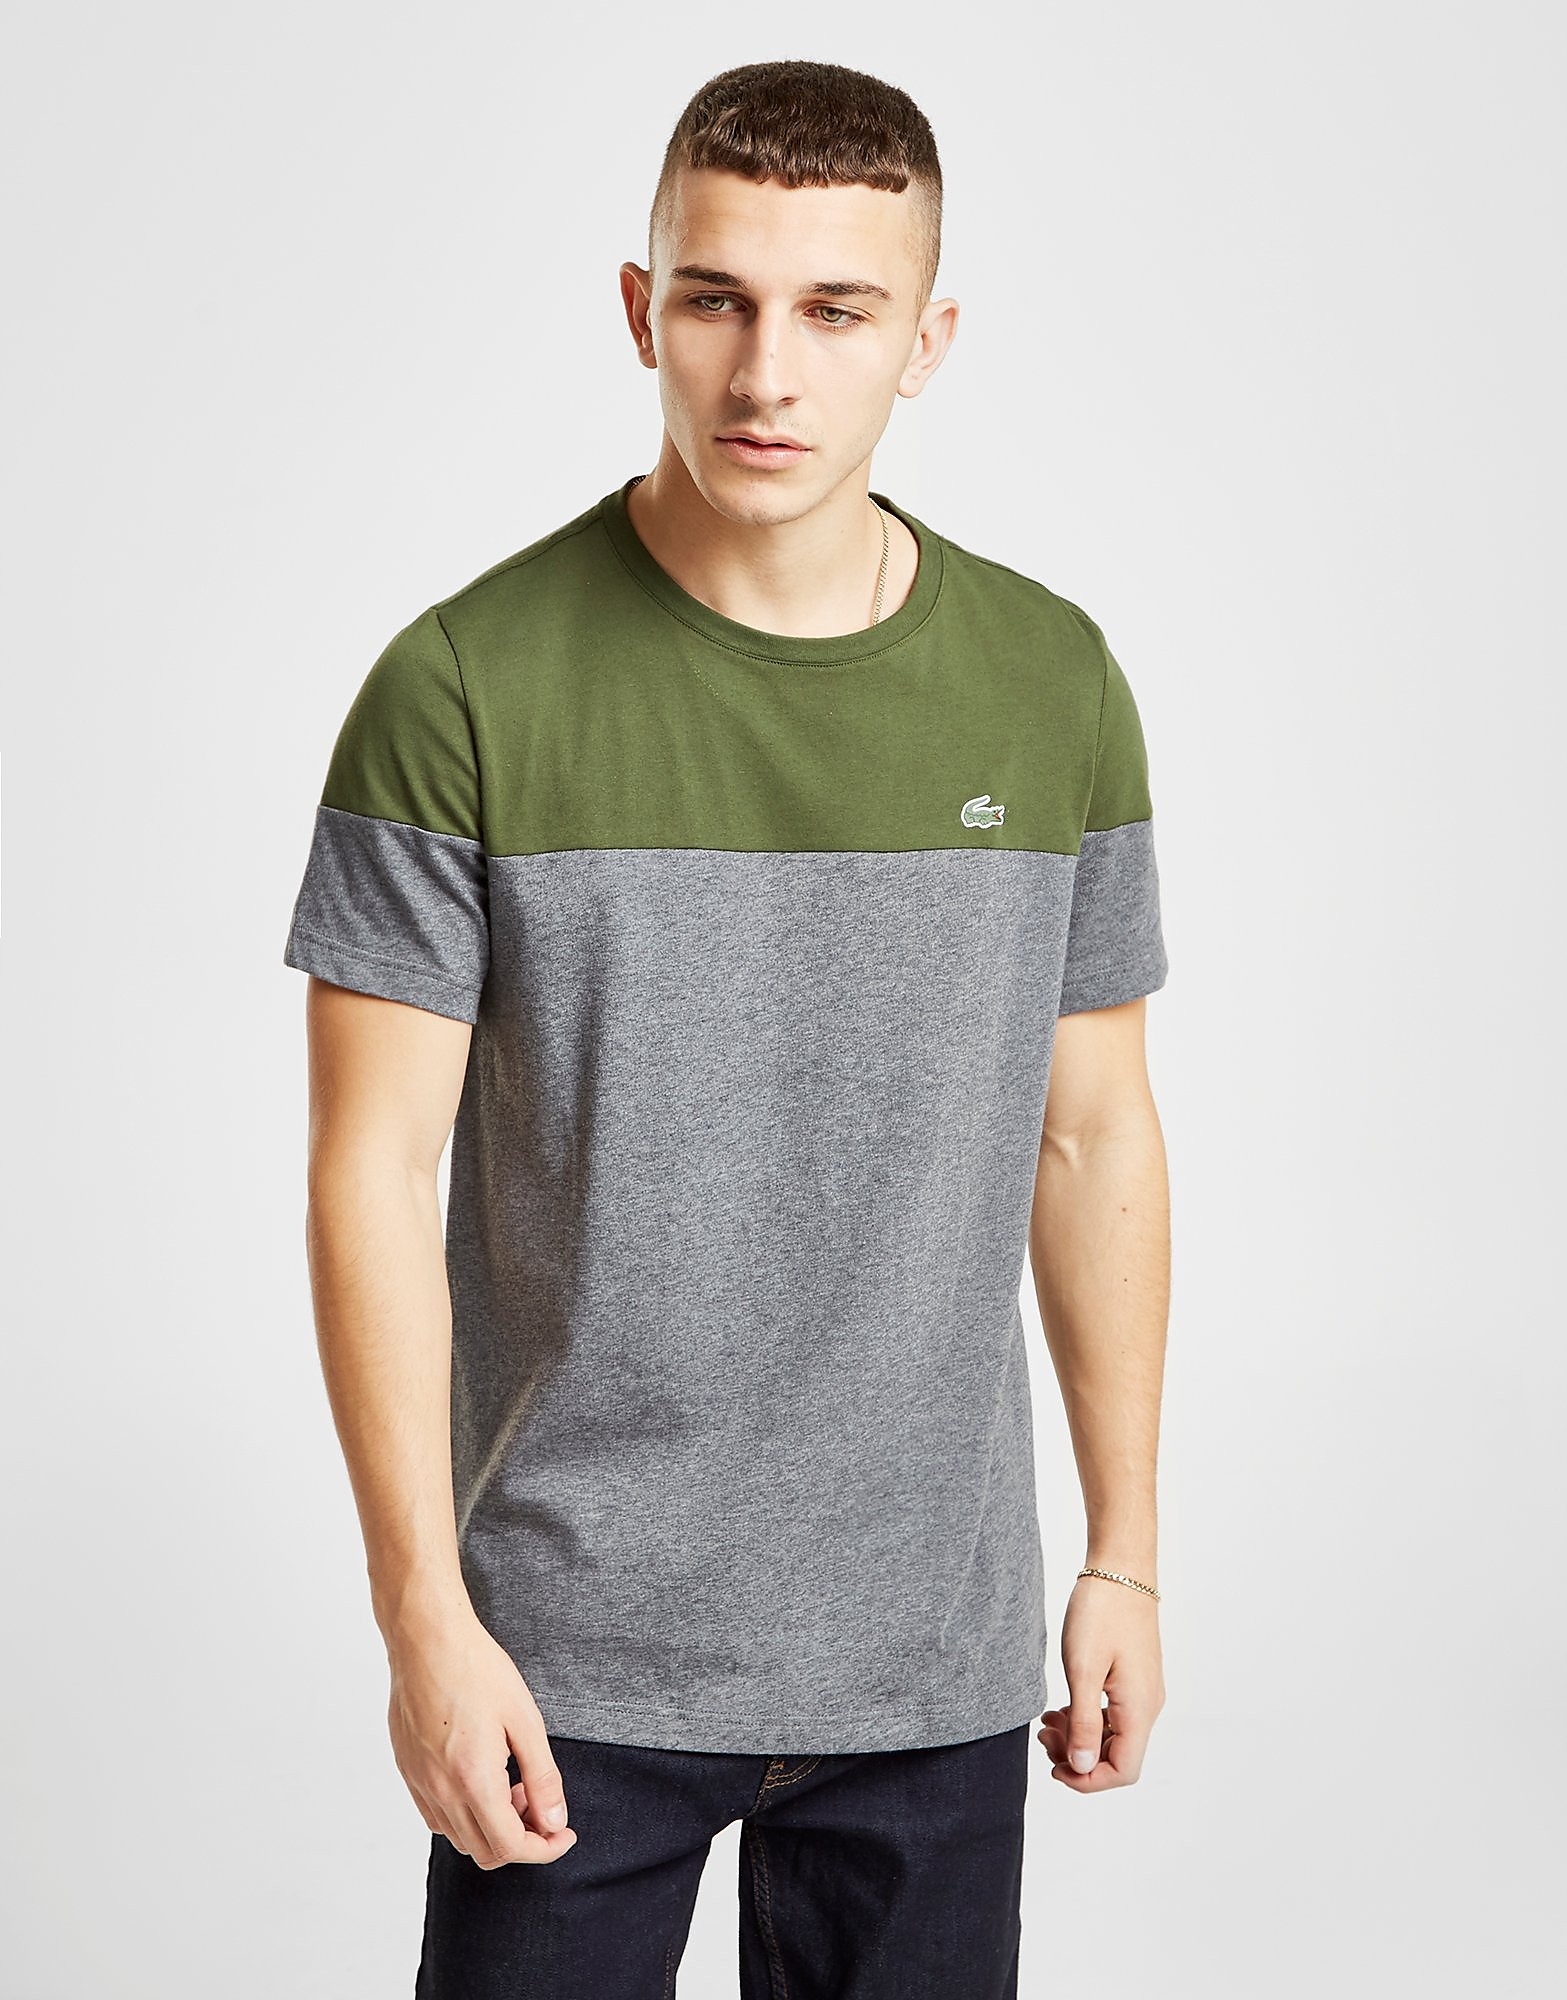 Lacoste Colour Block T-Shirt Heren - alleen bij JD - Khaki/Grey - Heren